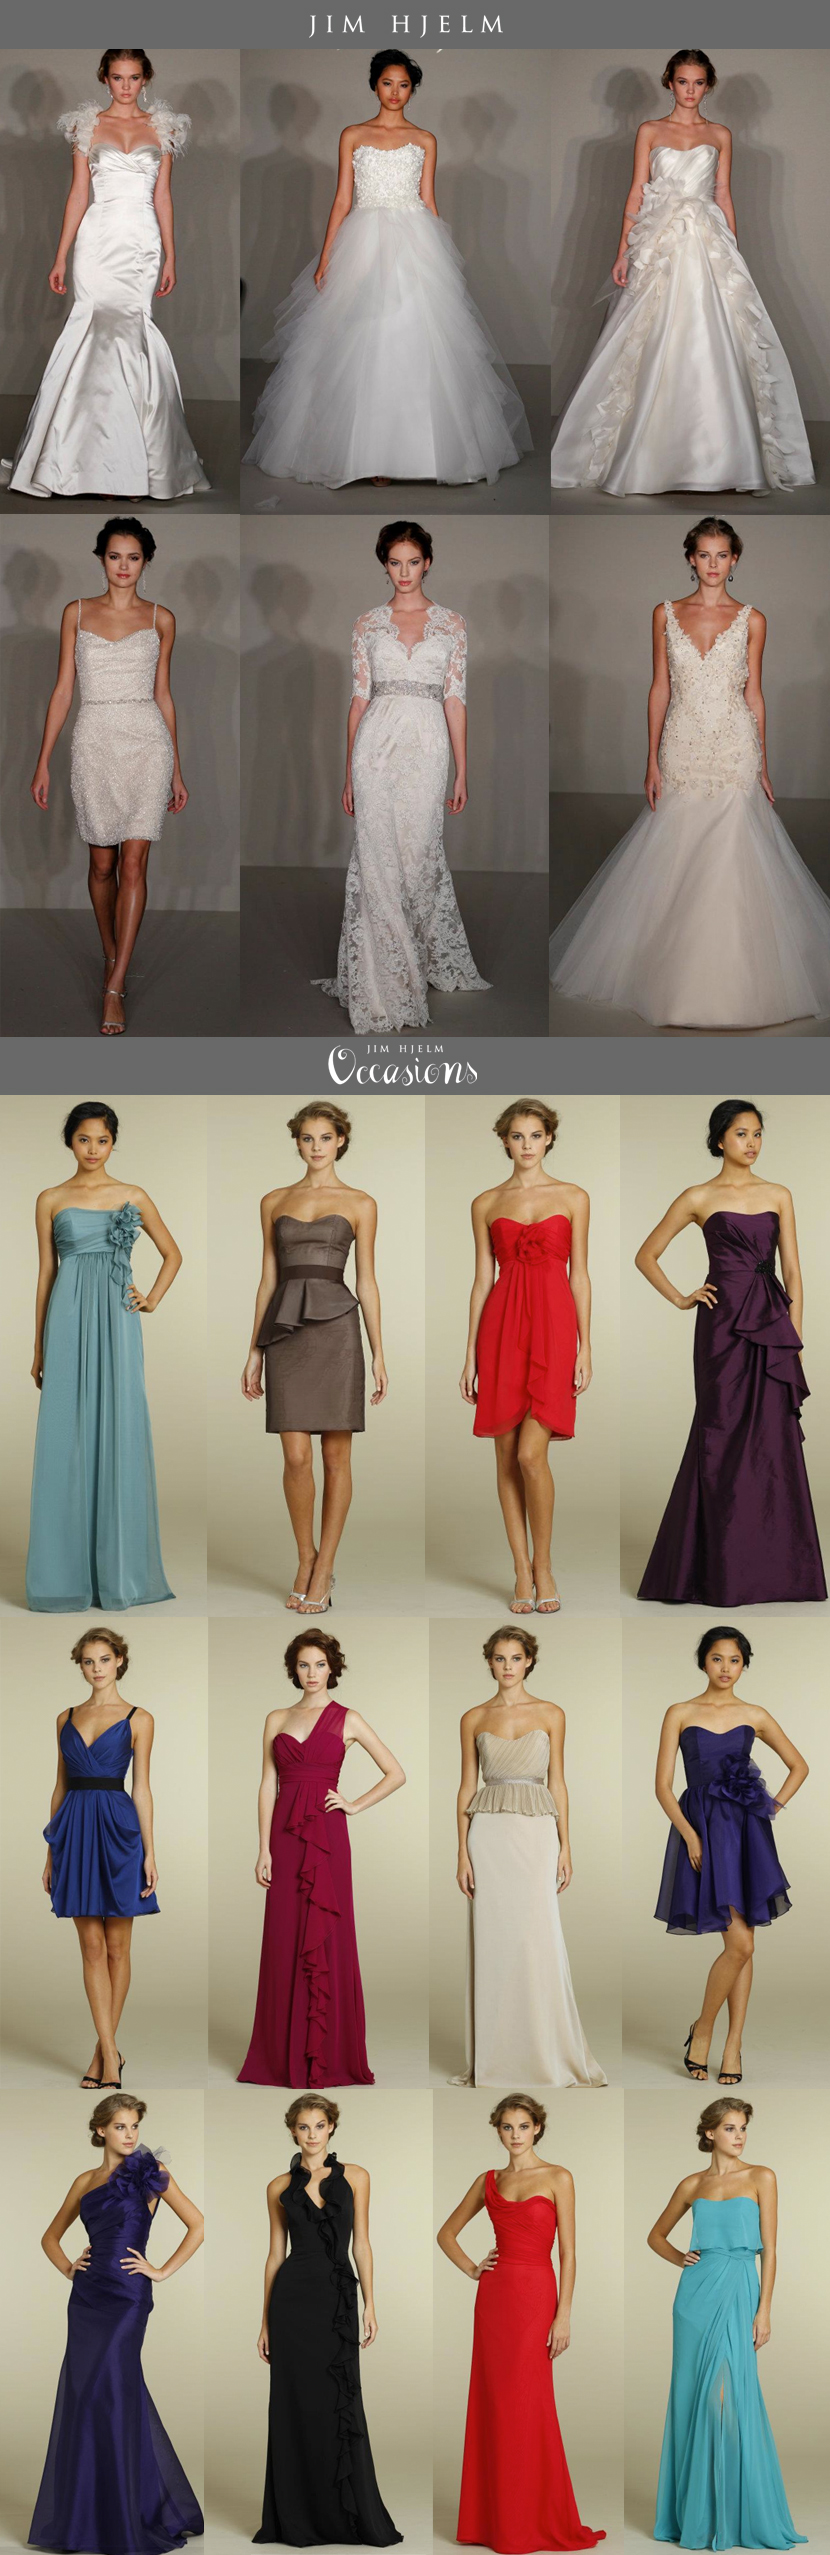 Jim Hjelm gowns Oklahoma City and Norman